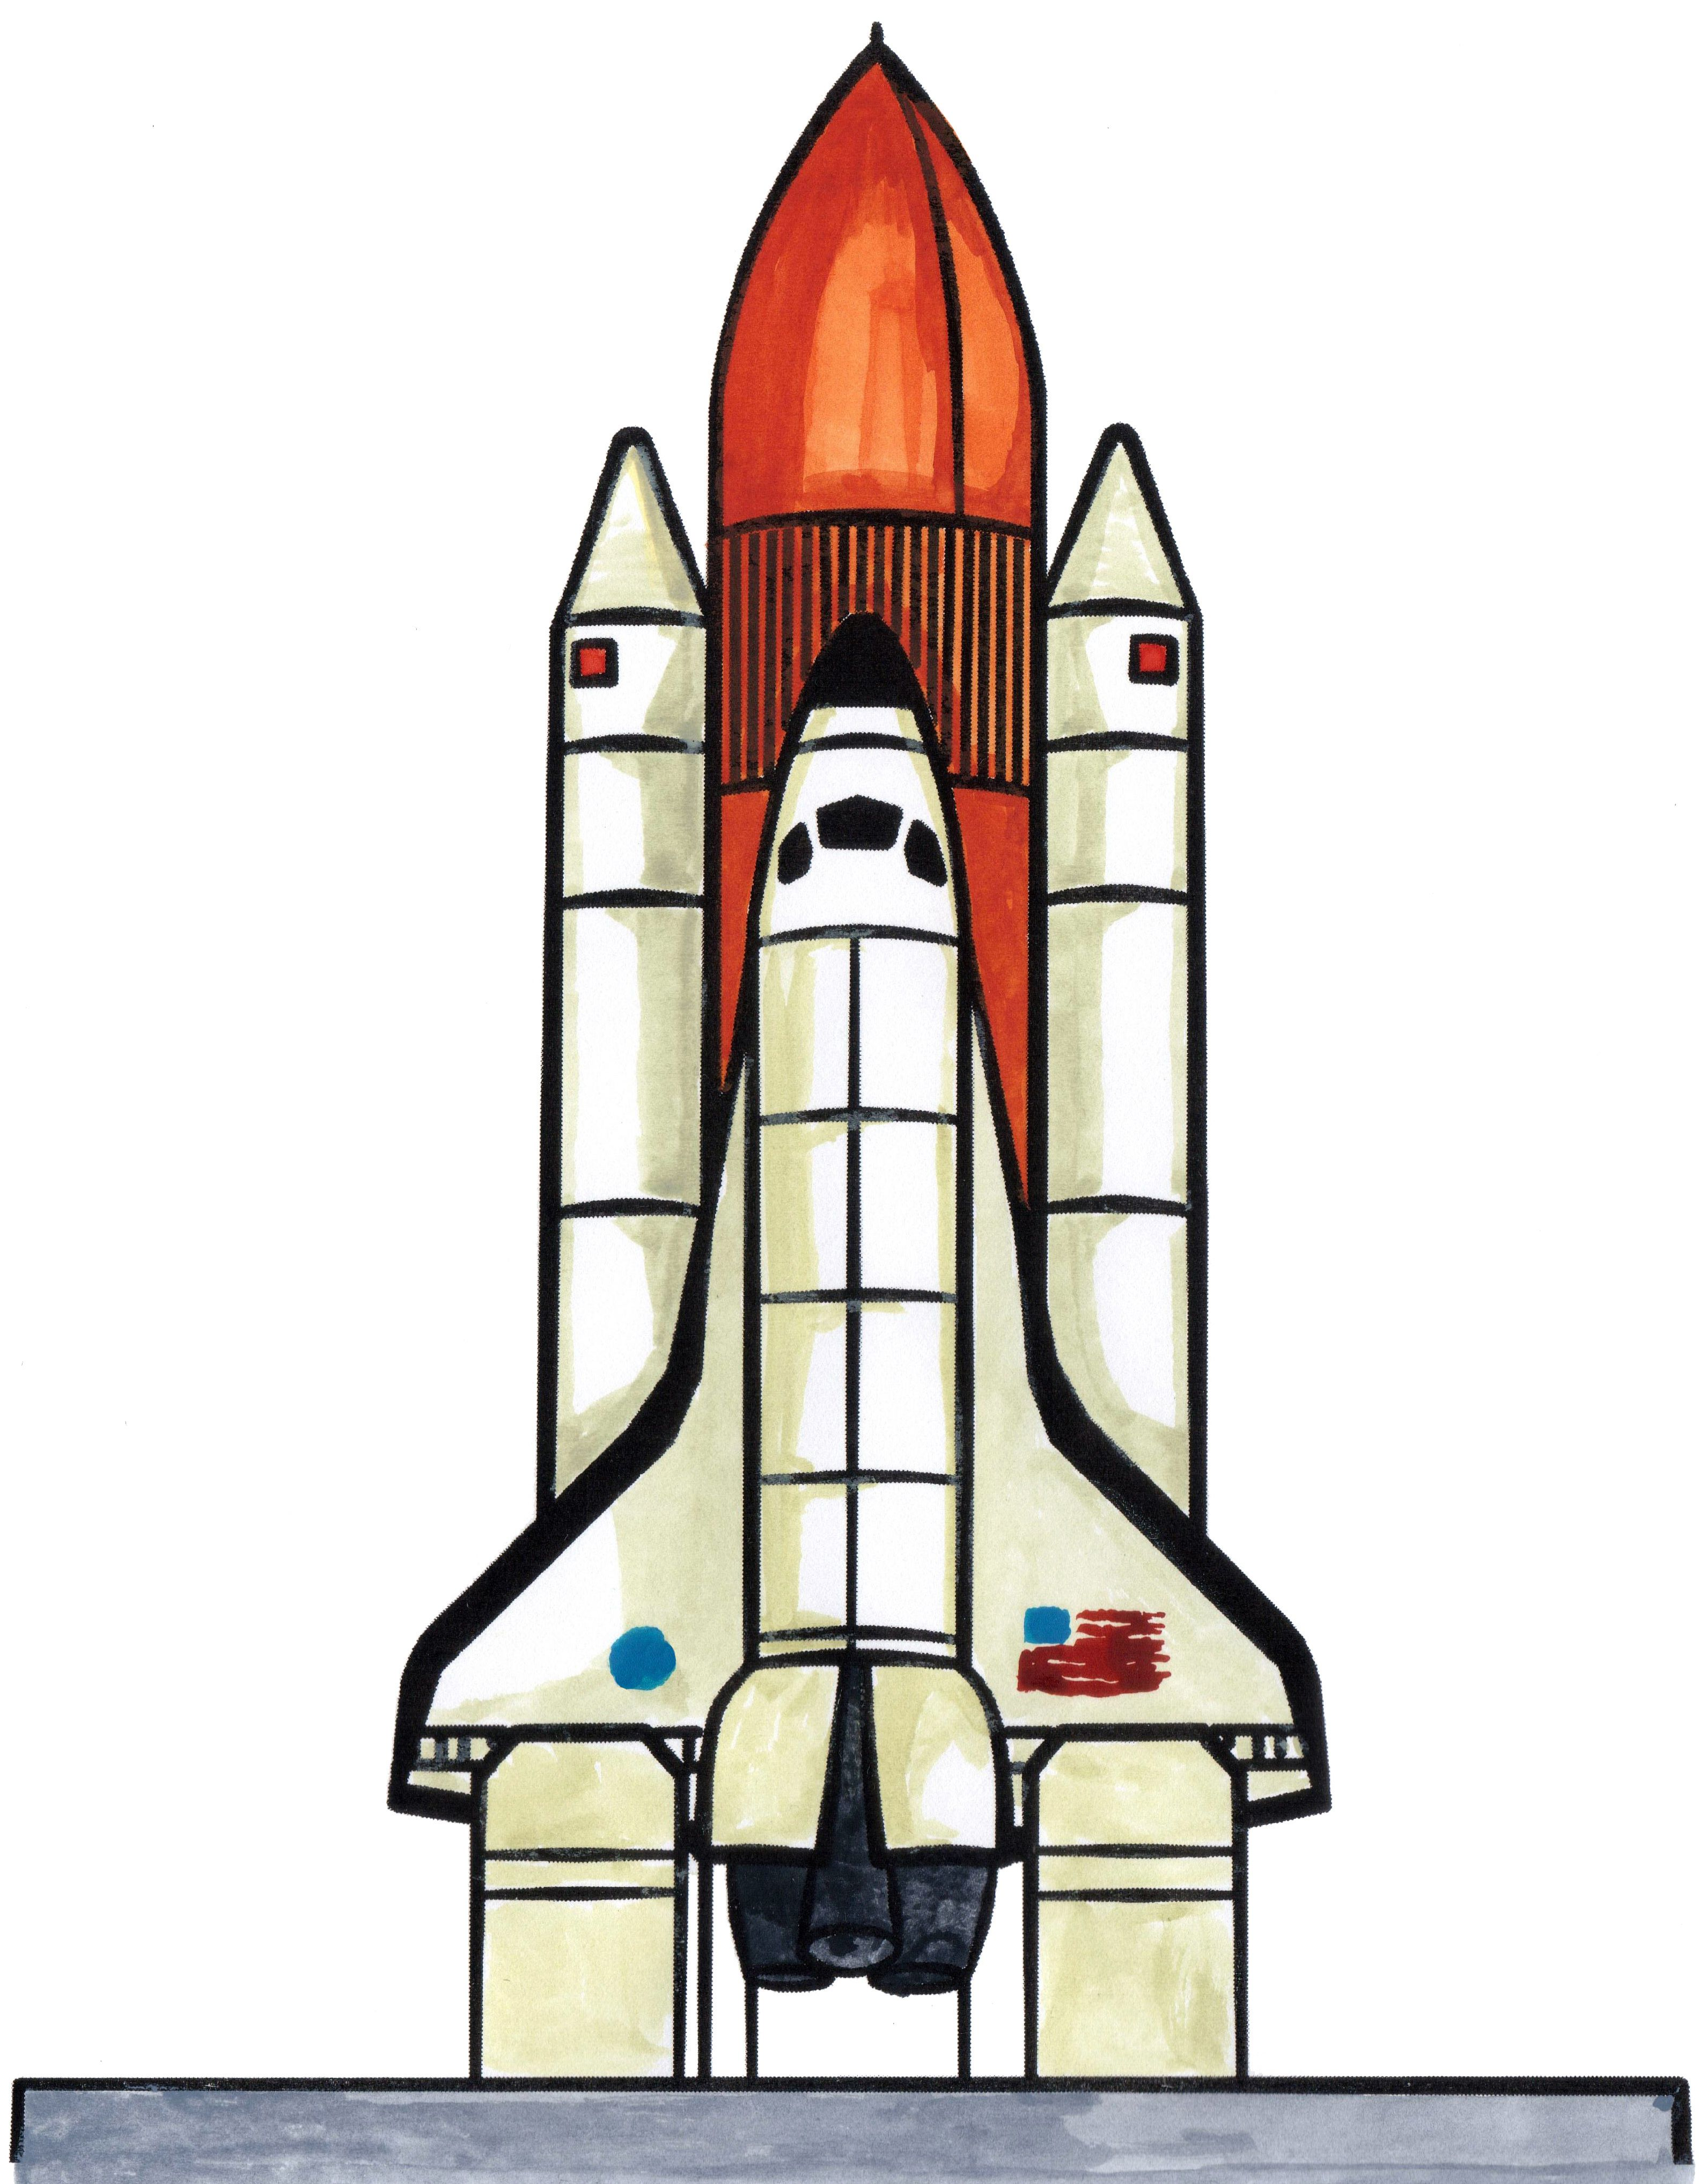 Spaceship clipart space vehicle. How to draw a